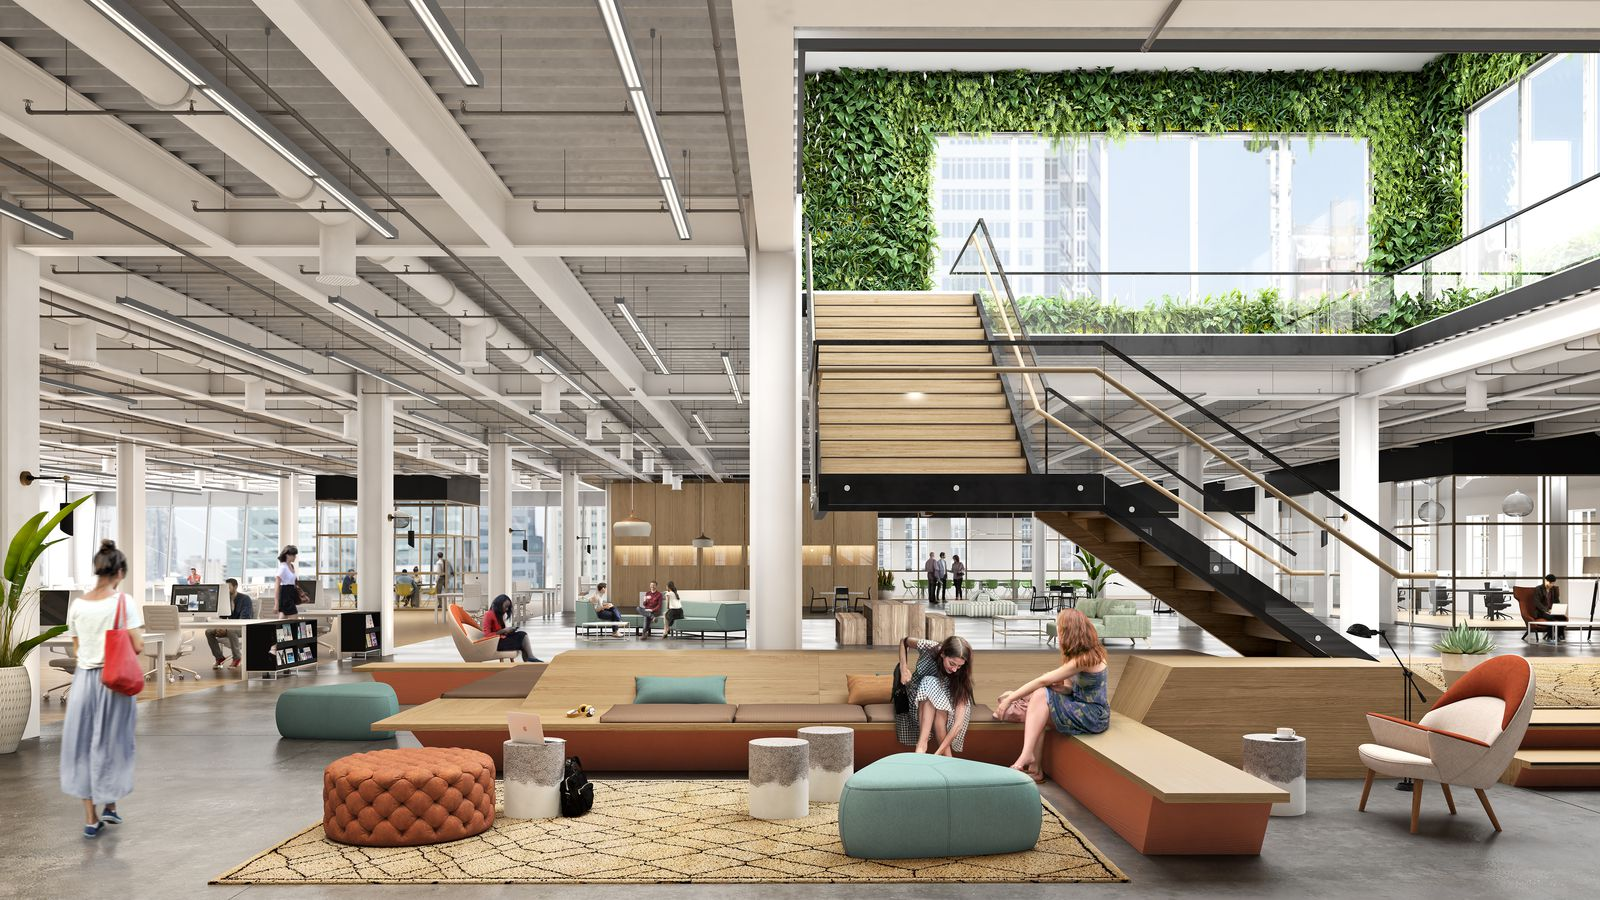 Downtown brooklyn s macy s will sprout creative office hub - Affordable interior design seattle ...